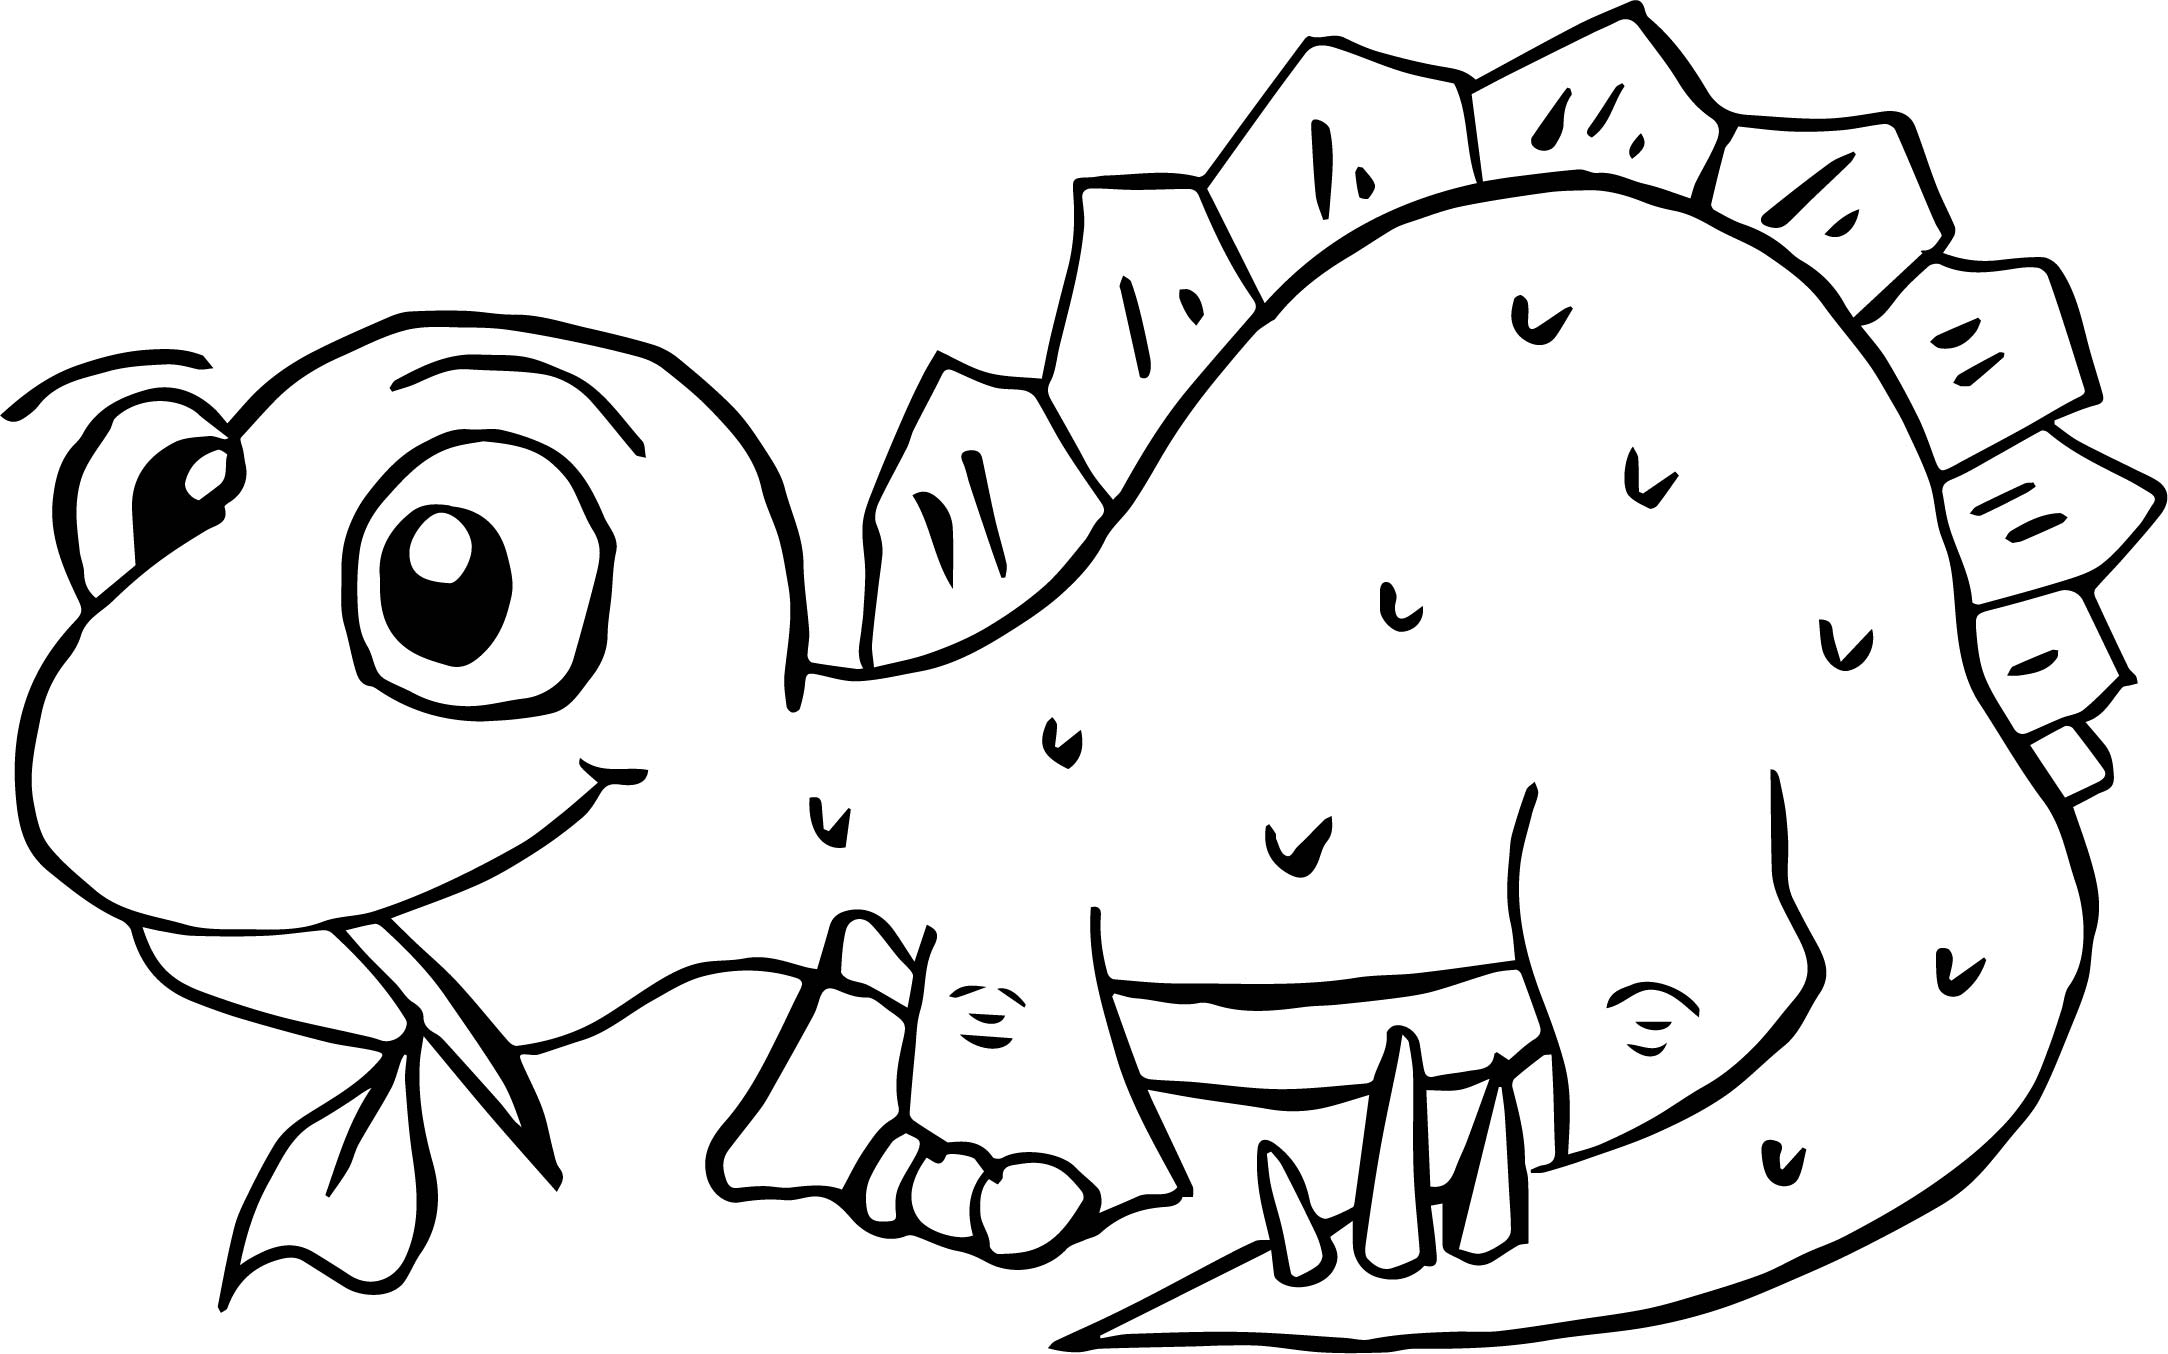 Dinosaur Eating Food Coloring Page